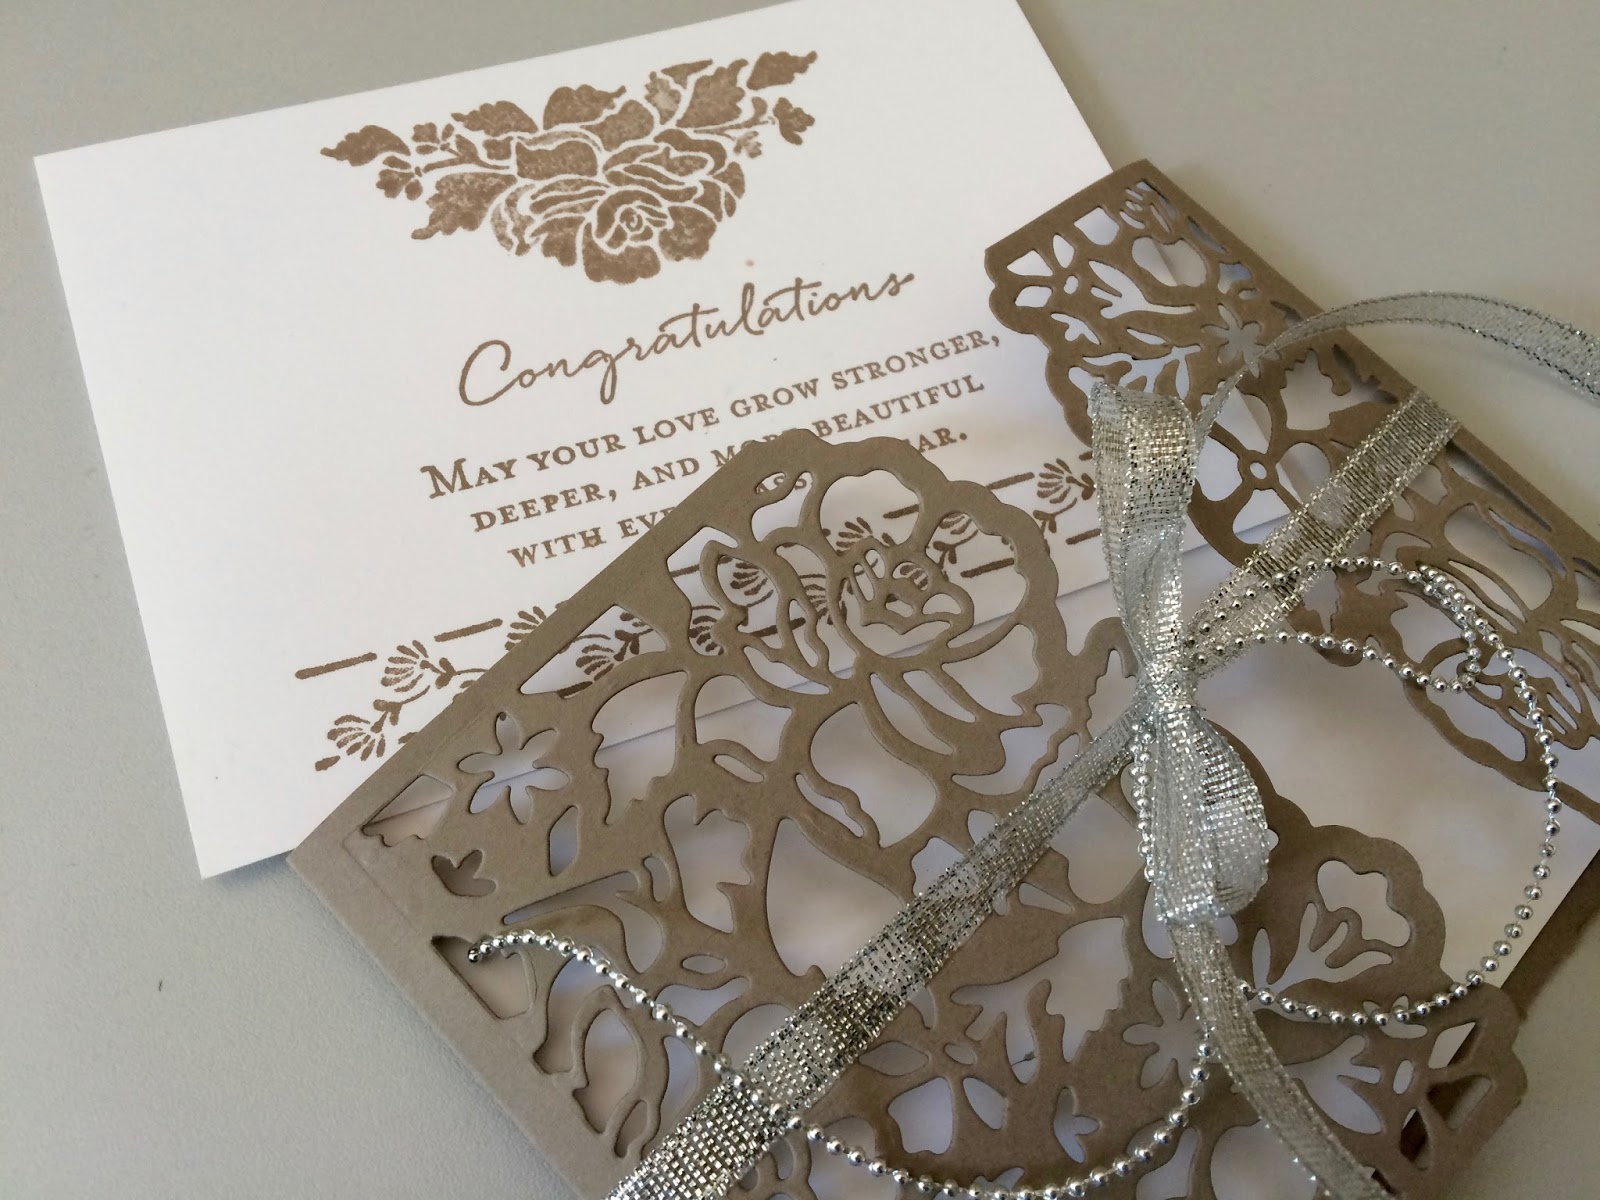 laura's creative moments wedding wishes